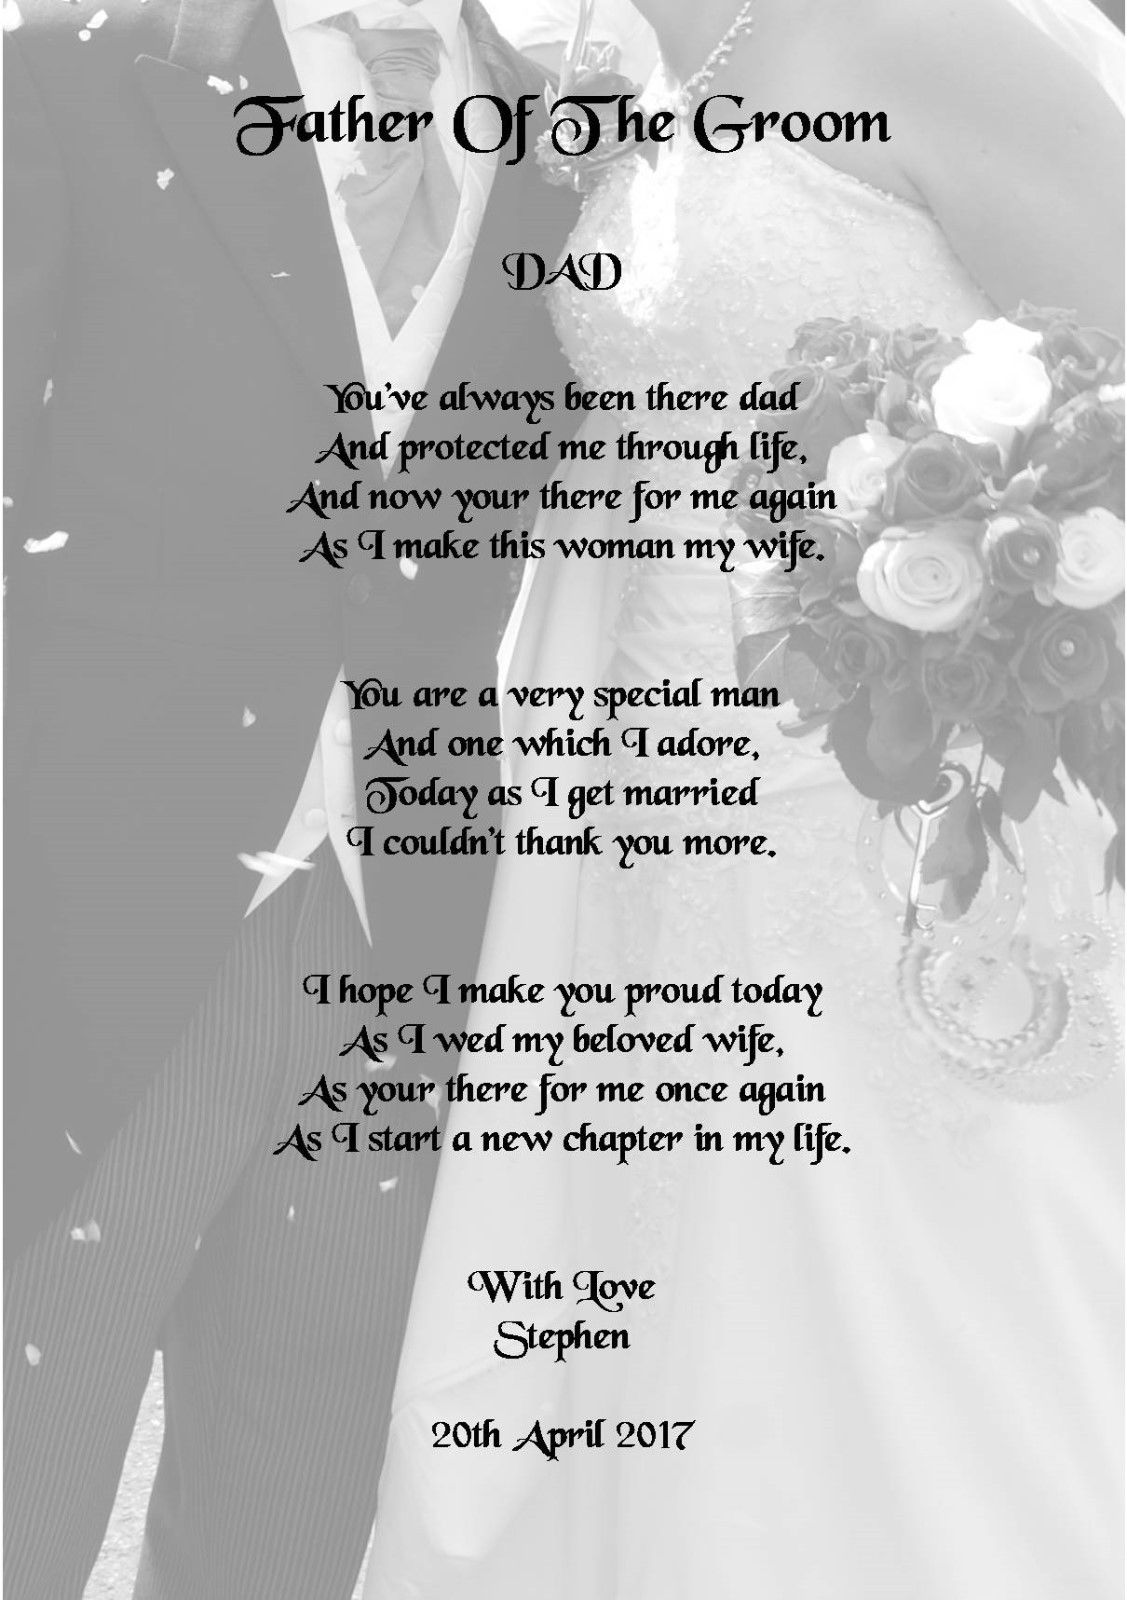 Wedding Day Thank You Gift Father Of The Groom Poem A5 Photo Ebay